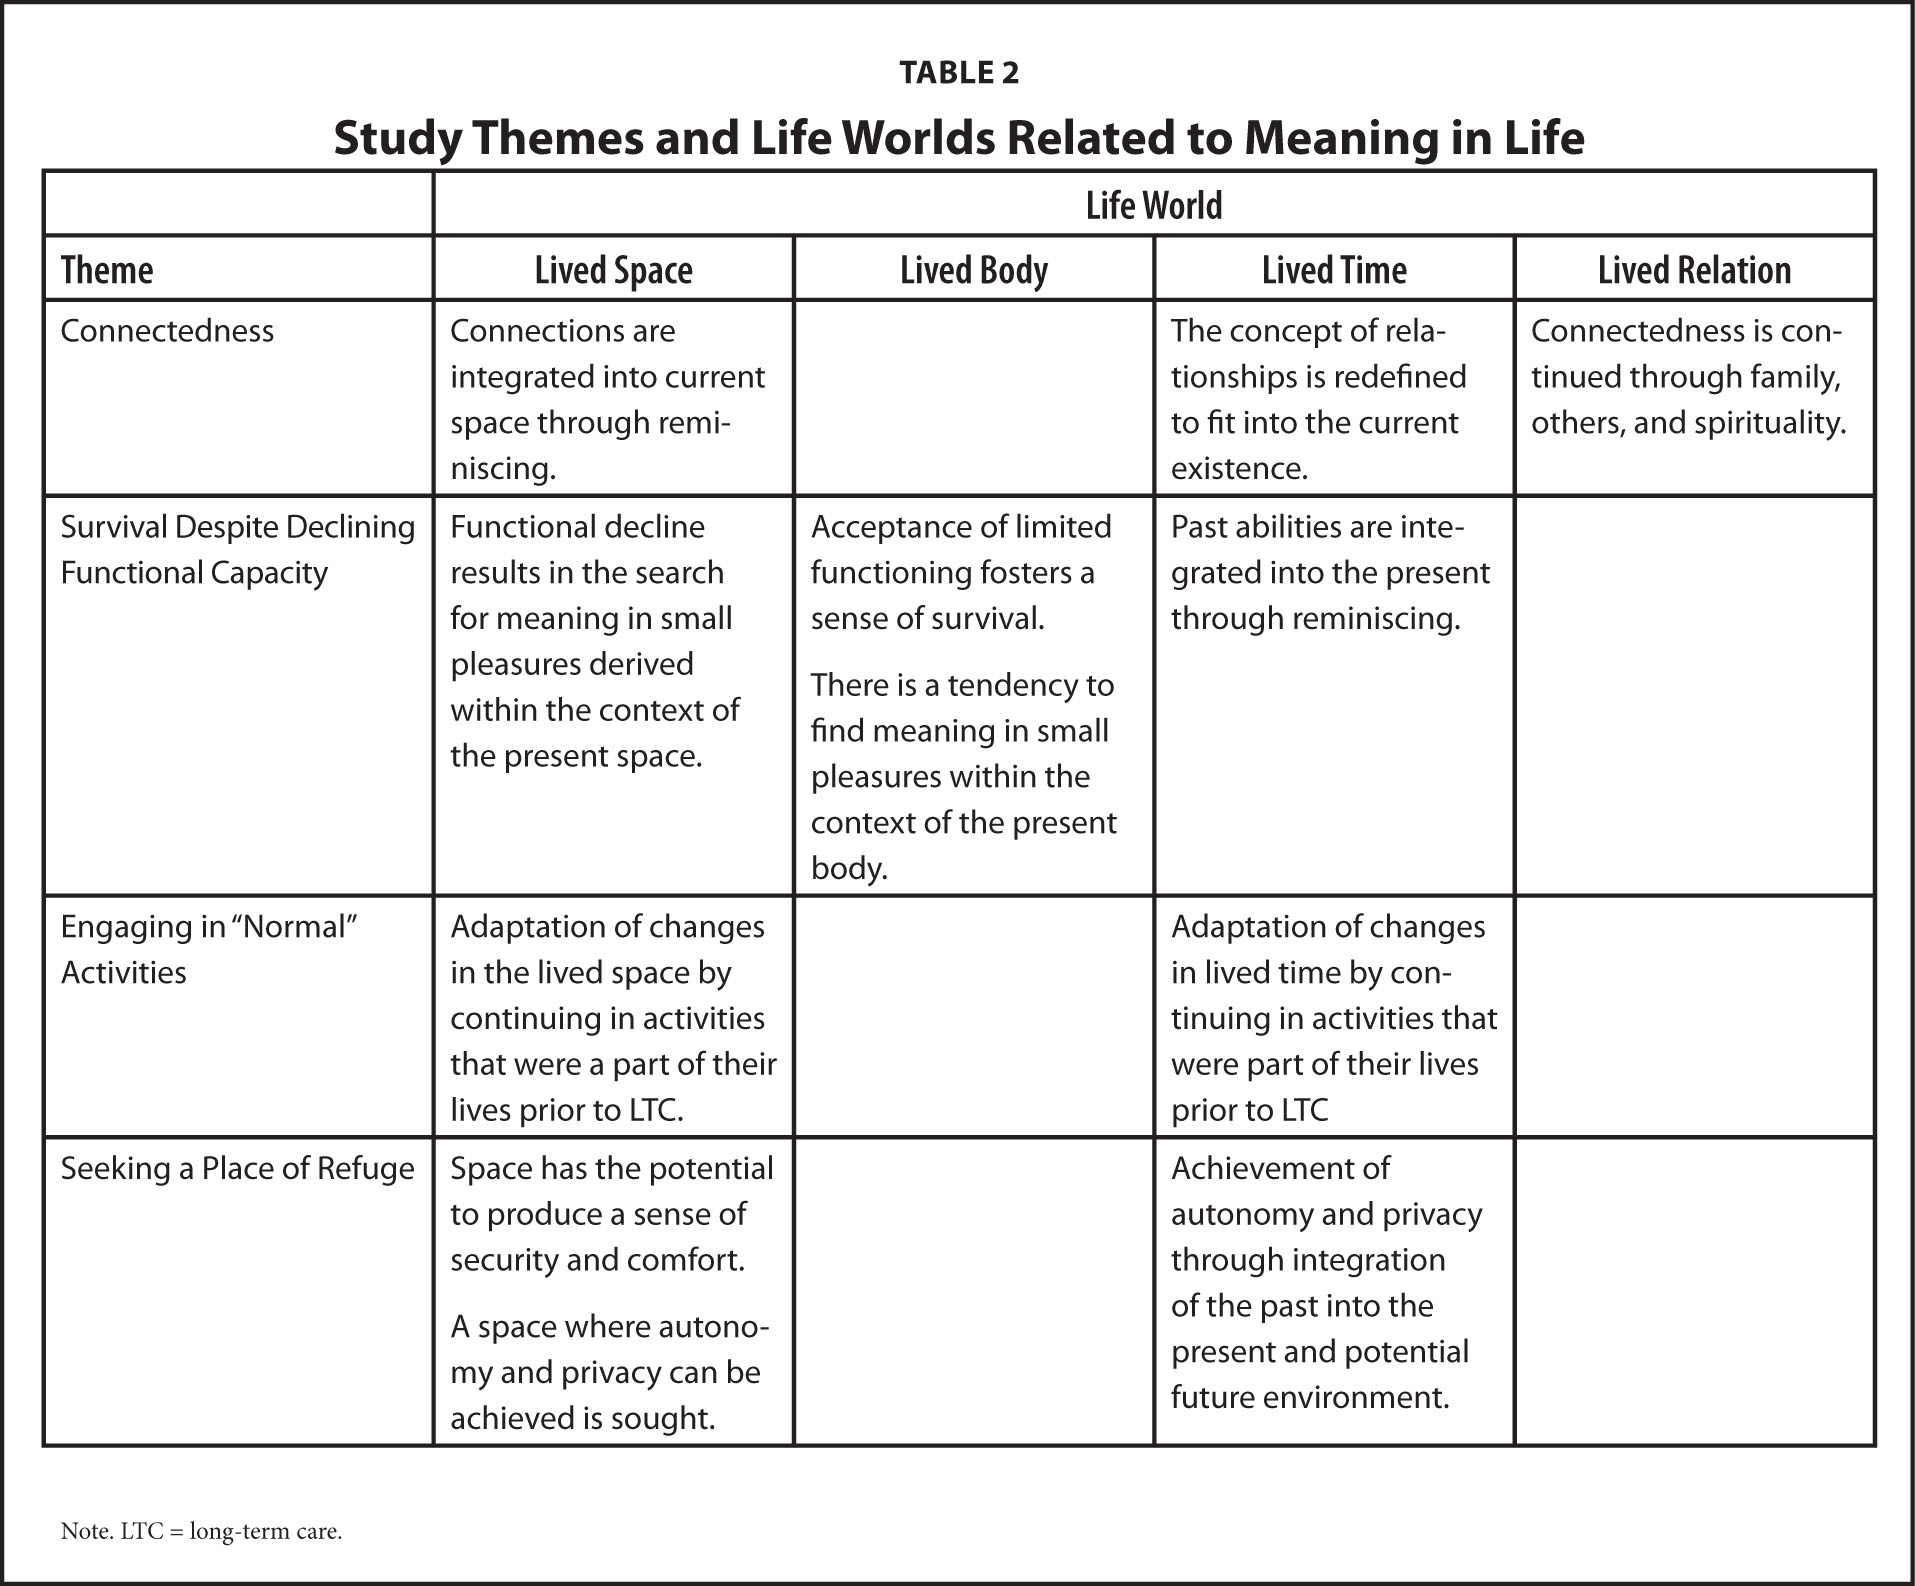 Study Themes and Life Worlds Related to Meaning in Life